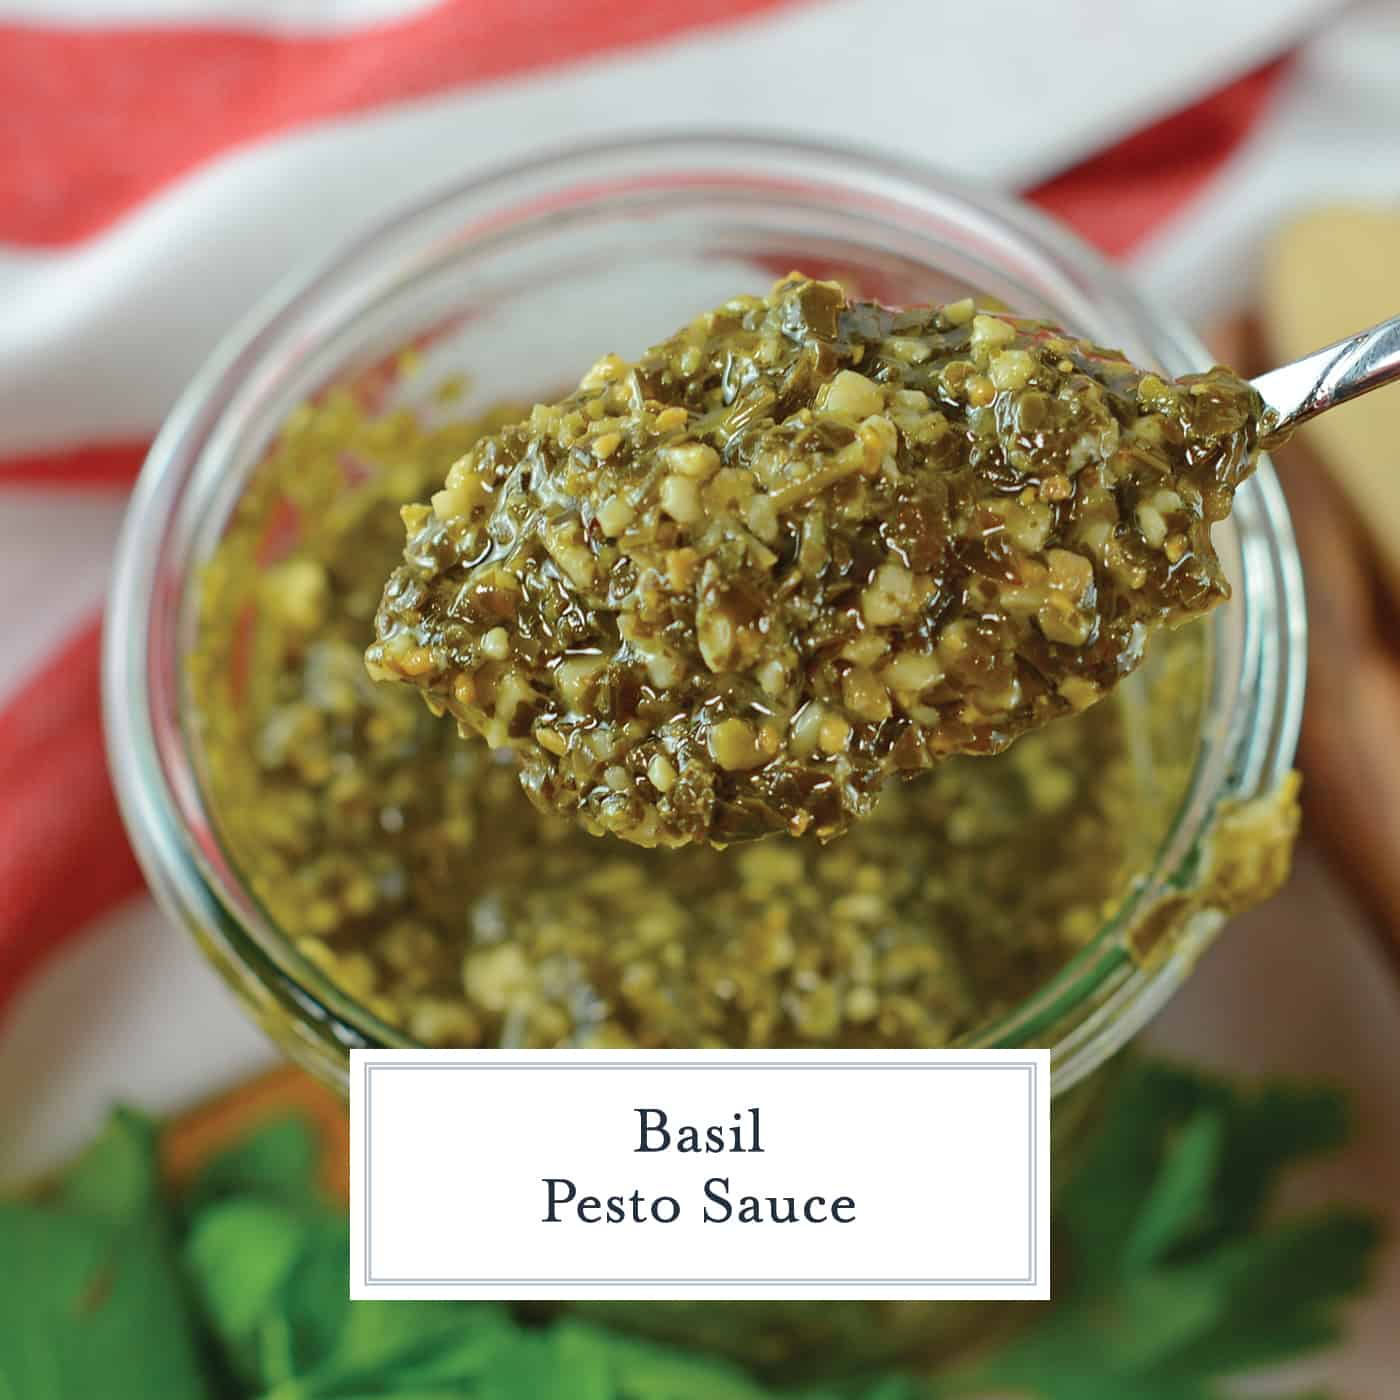 Pesto Sauce is the most adaptable recipe out there! Basil pesto sauce is perfect as a pasta sauce, marinade, sandwich spread or even dipping sauce! #pestorecipe #basilpesto #pestosauce www.savoryexperiments.com